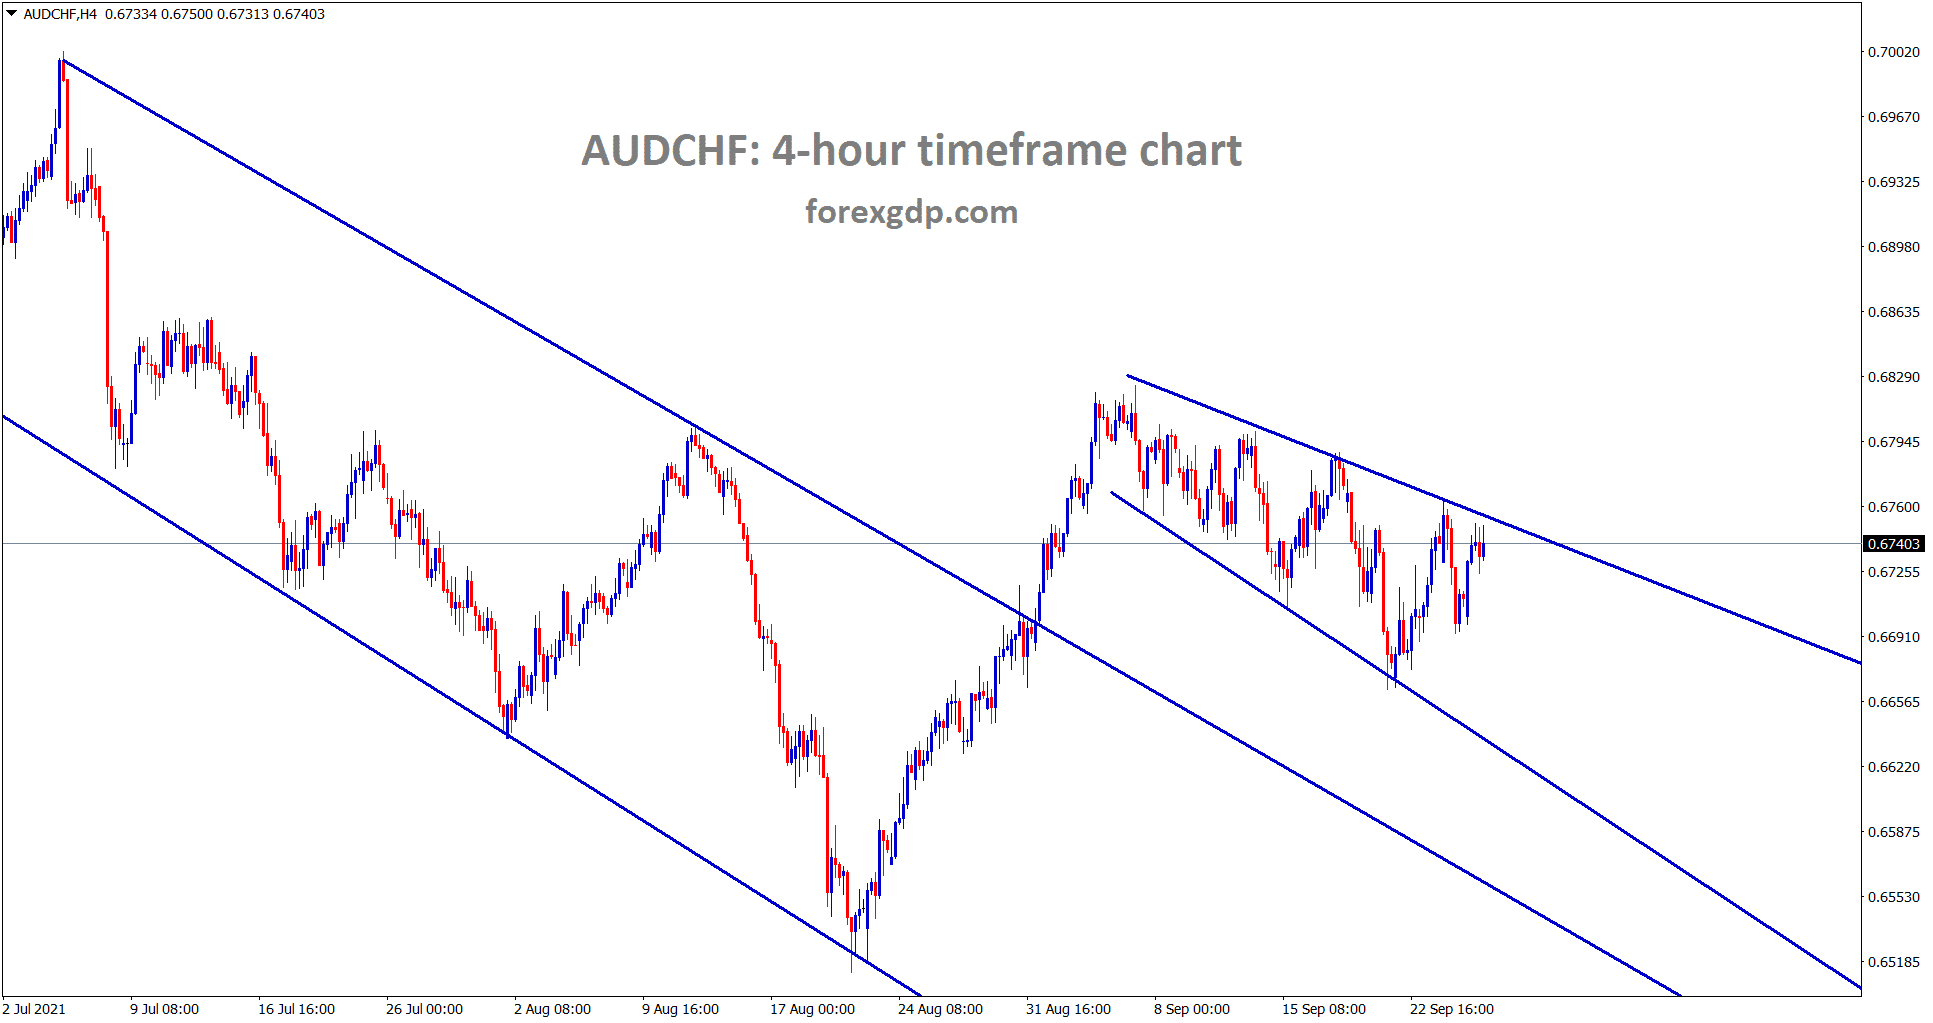 AUDCHF is consolidating between the specific price levels wait for breakout